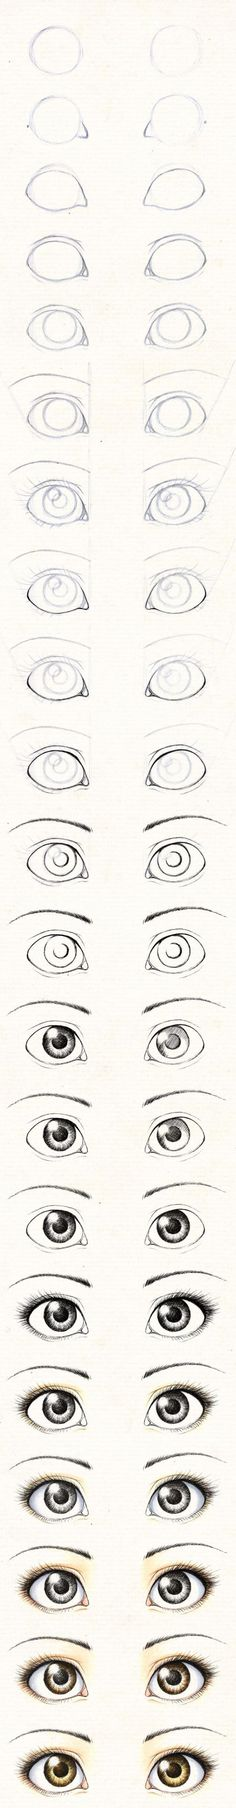 eyes for doll